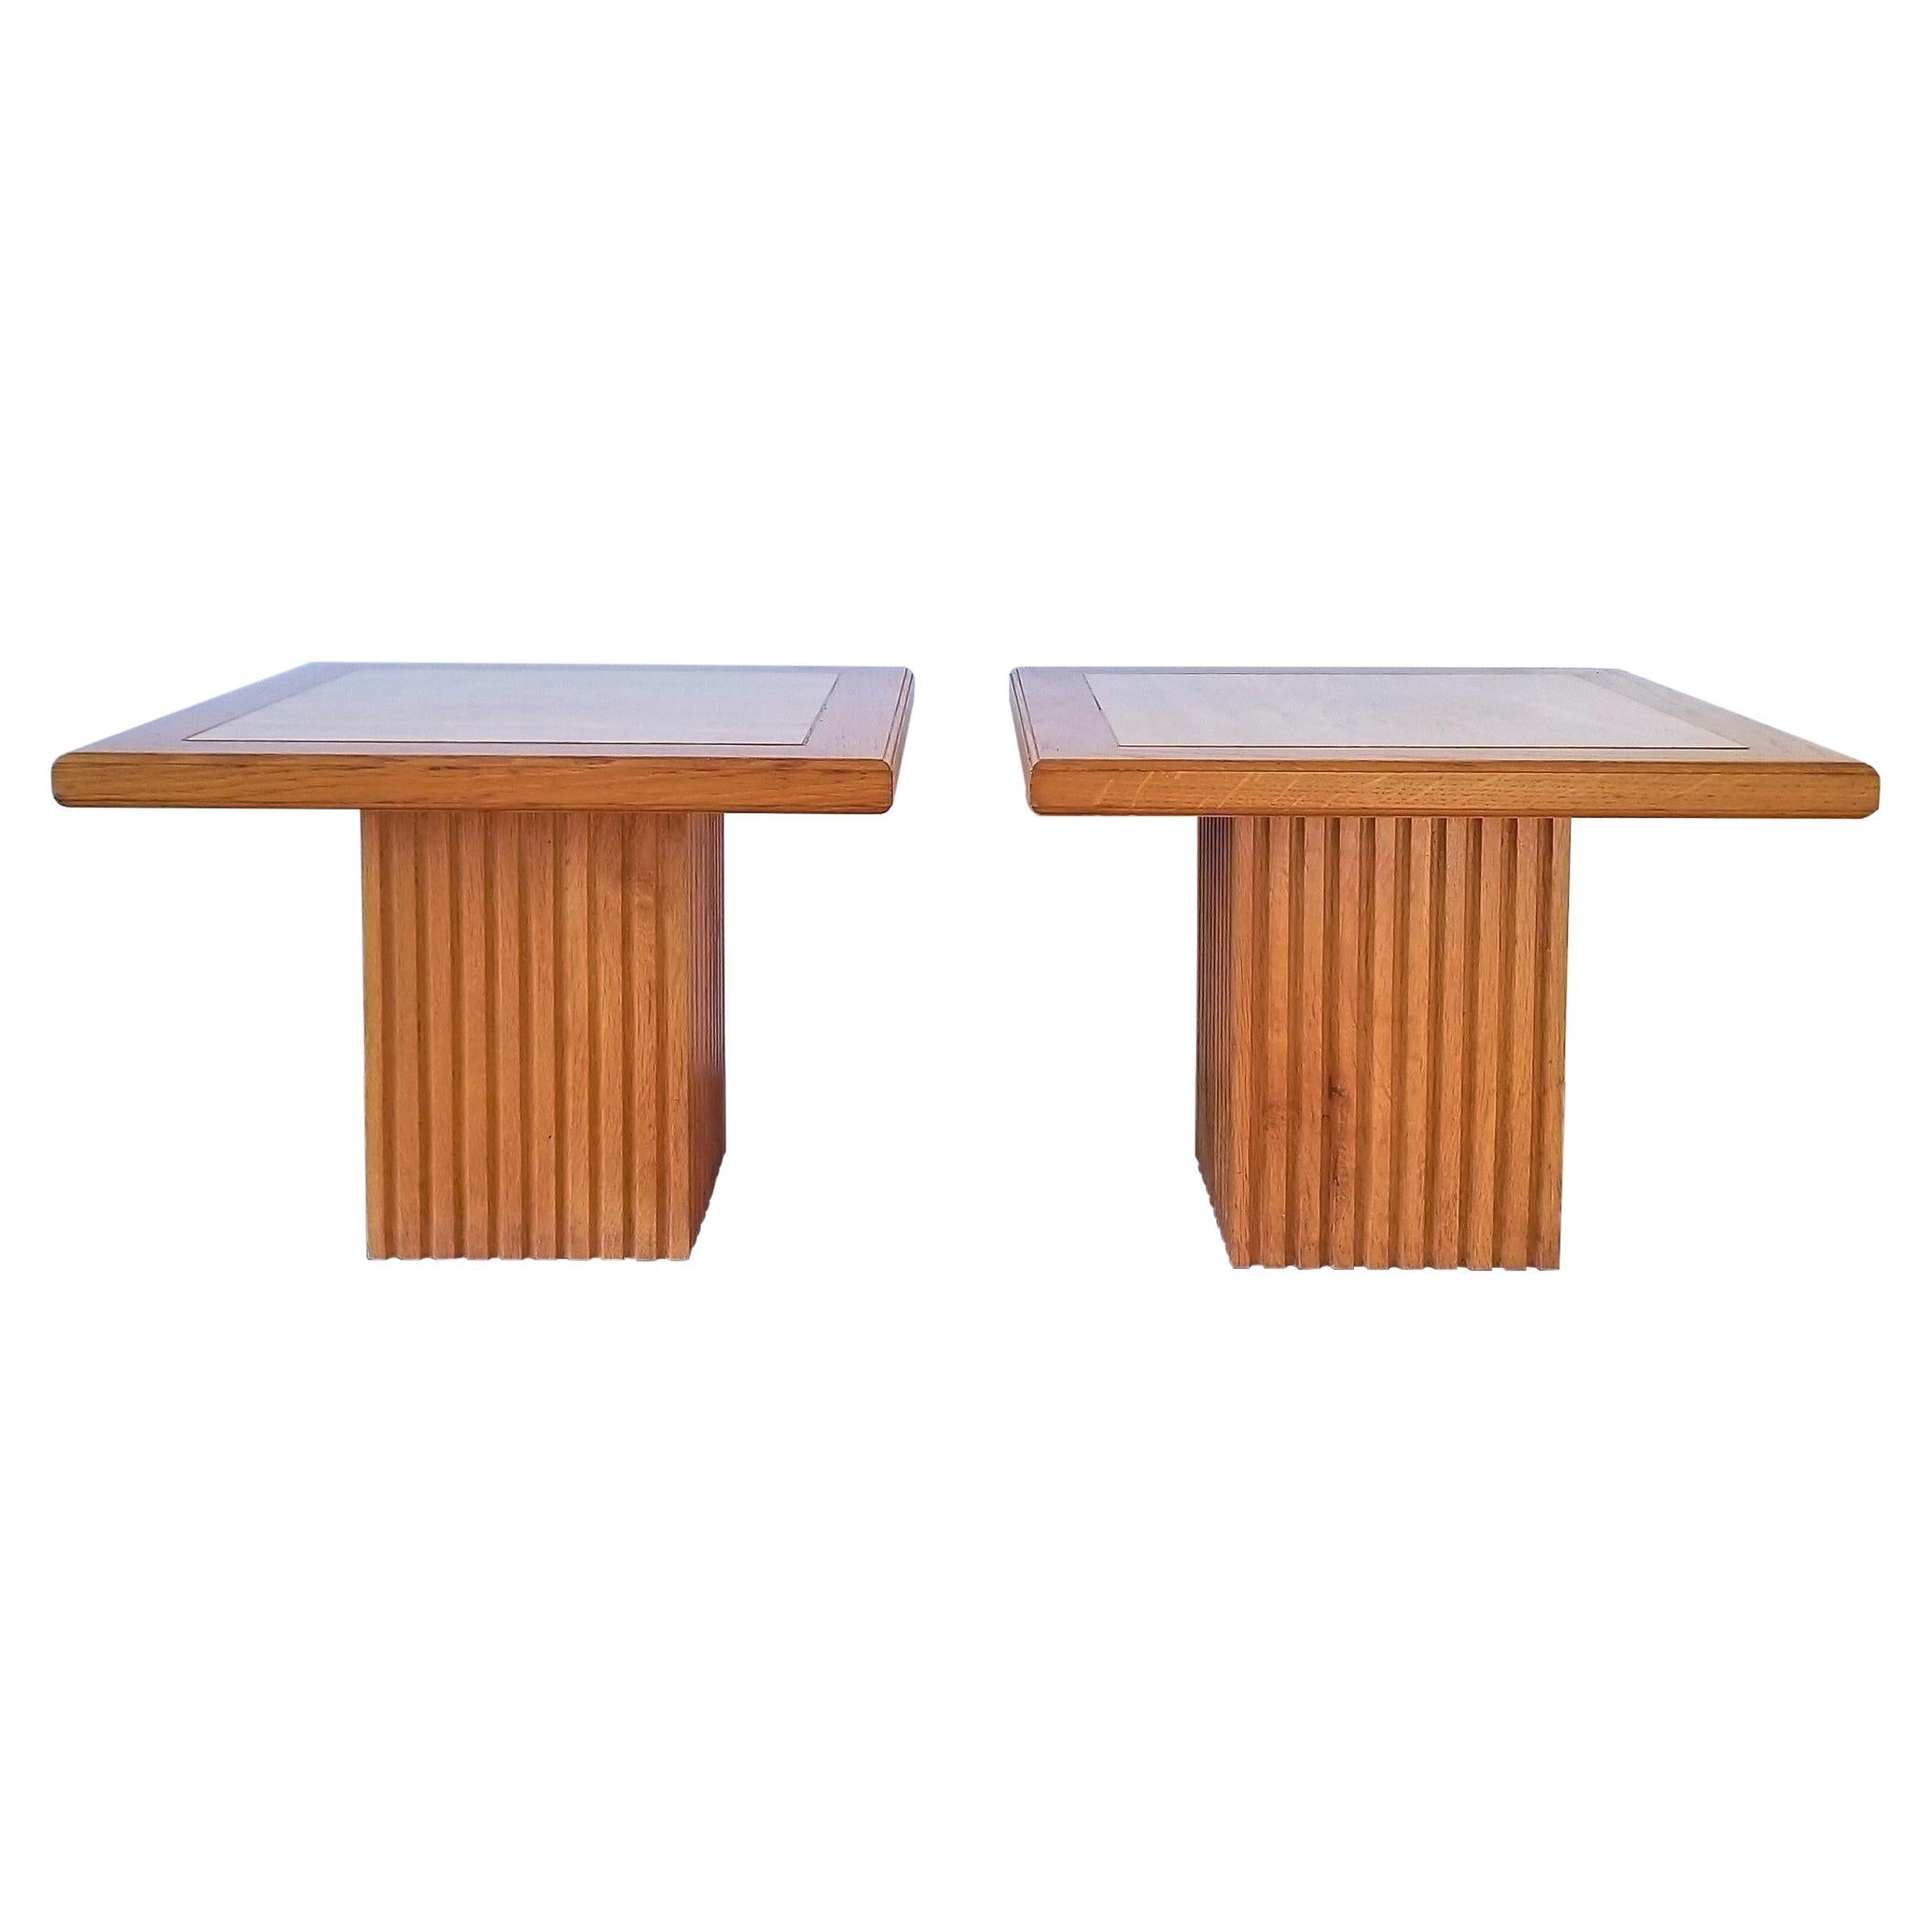 Pair of Neoclassical Oak and Beige Travertine End Tables, France, 1970s